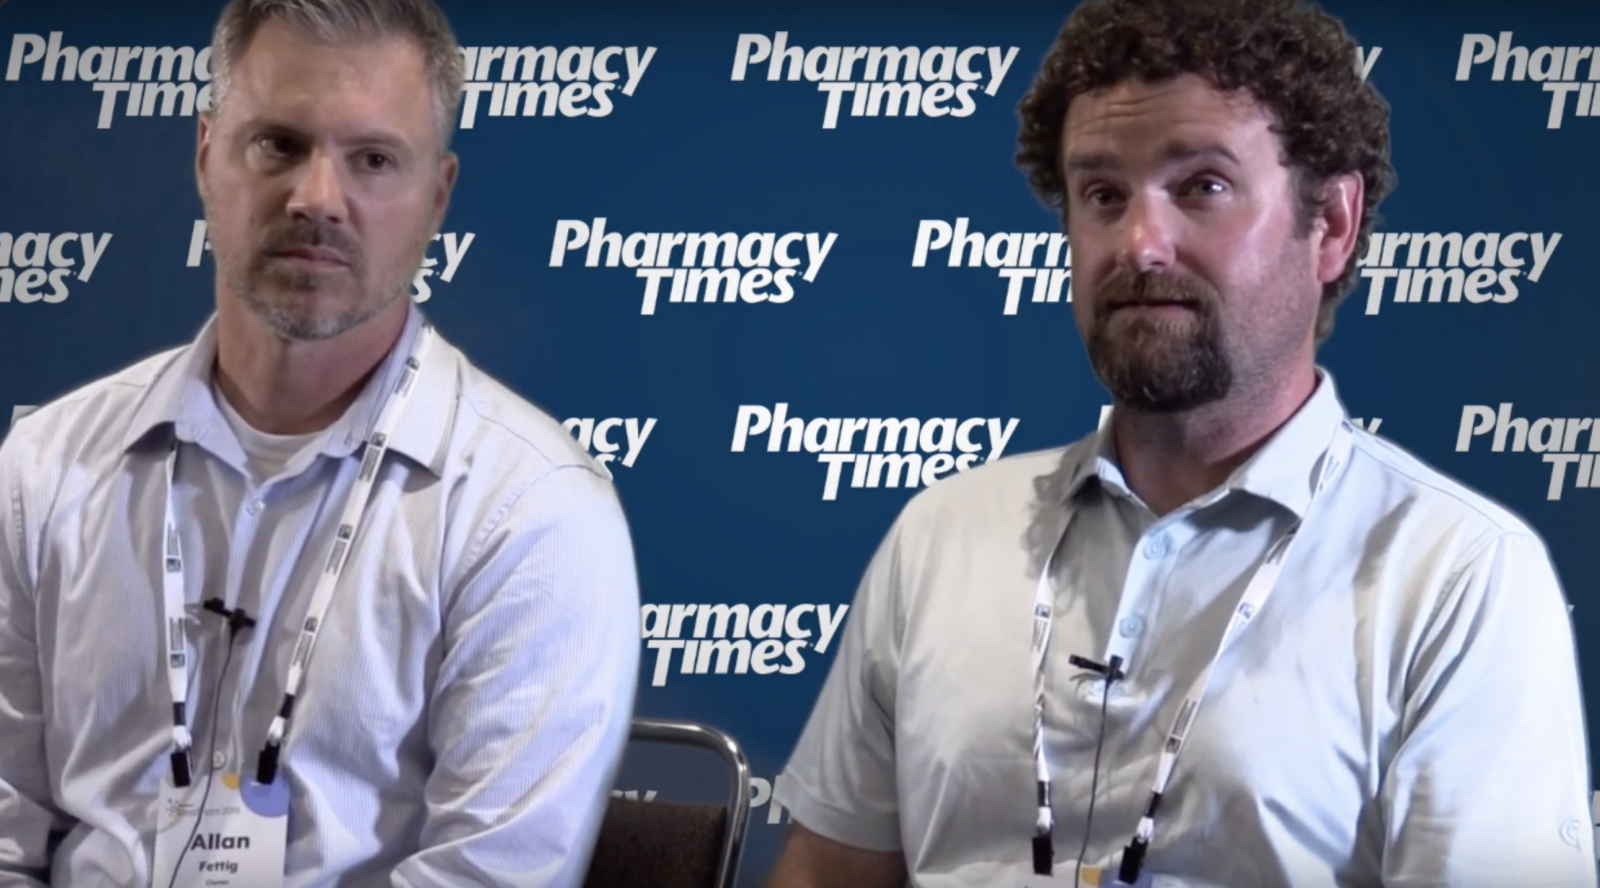 Co-Owners of Trumm Drug Discuss Their Approach to the Change in Ownership